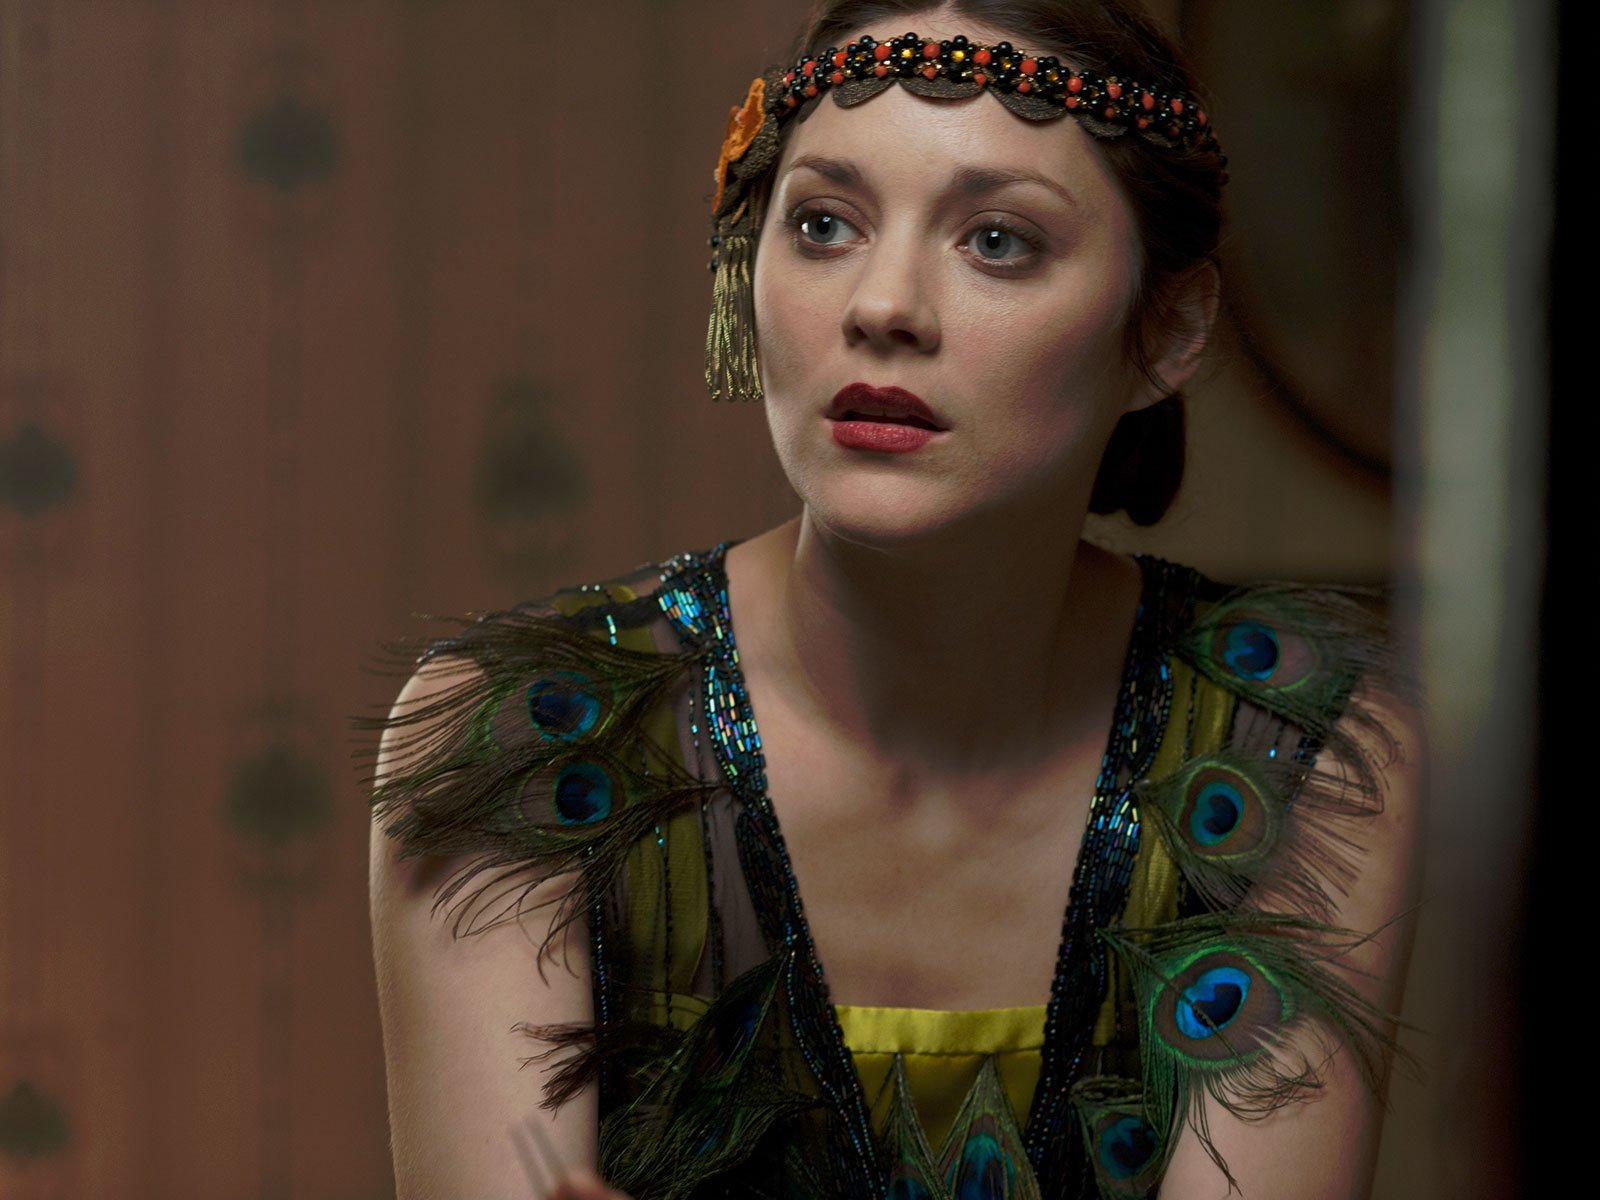 Interview: Marion Cotillard on The Immigrant, Two Days, One Night, and More